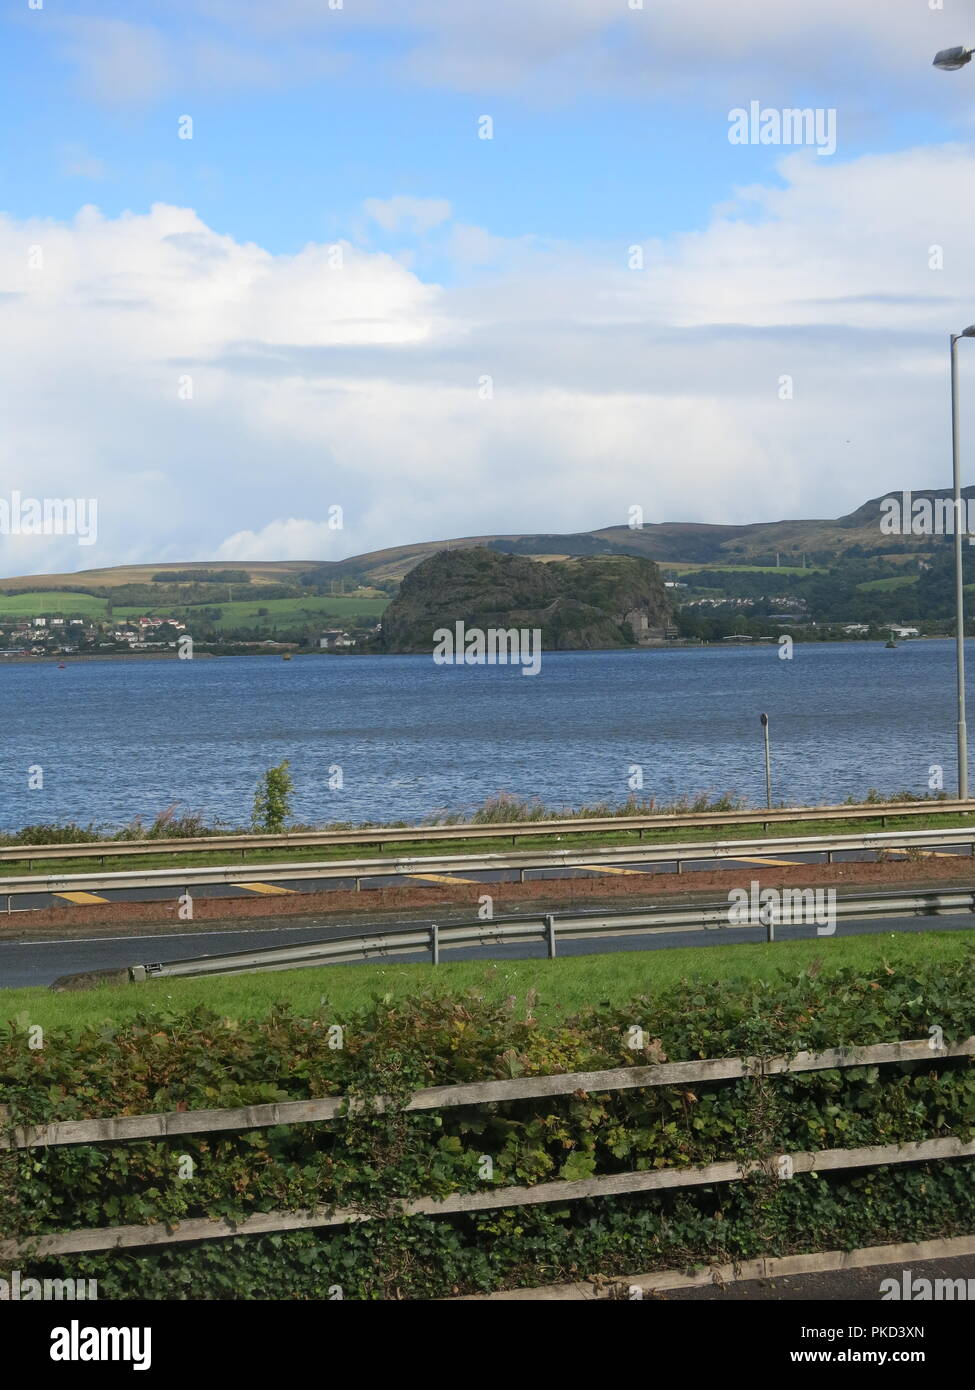 A view of Dumbarton Rock from across the Clyde Estuary on the shores of Langbank, Port Glasgow, Scotland (September 2018) - Stock Image